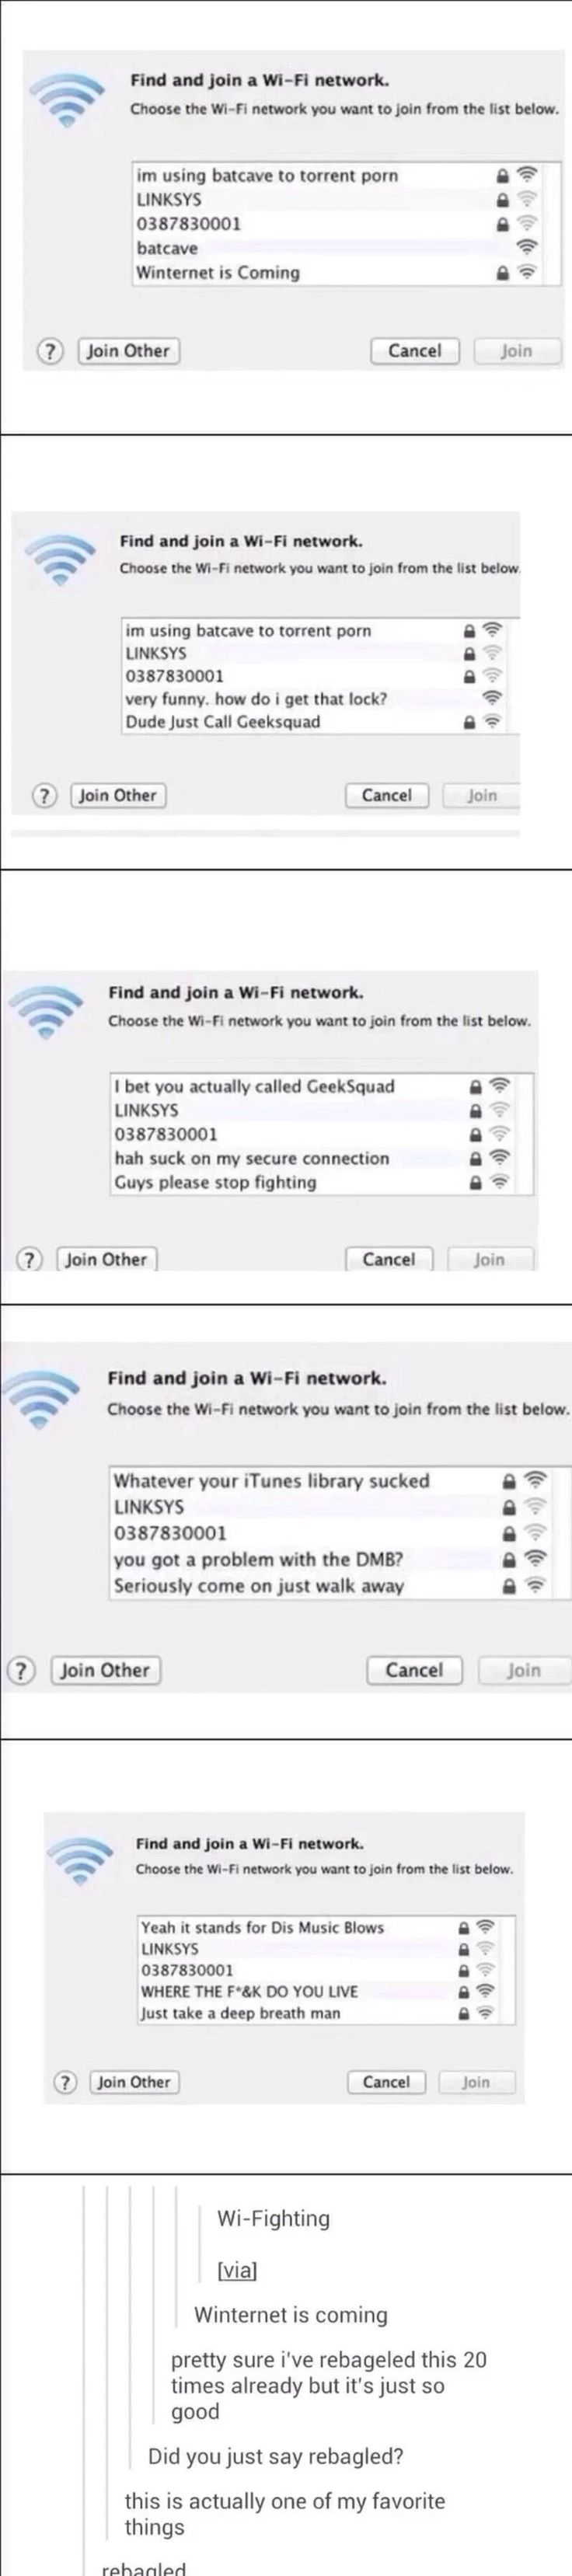 Wifi fighting>>>I laughed more at the rebageled part...it felt good to truly laugh again:)